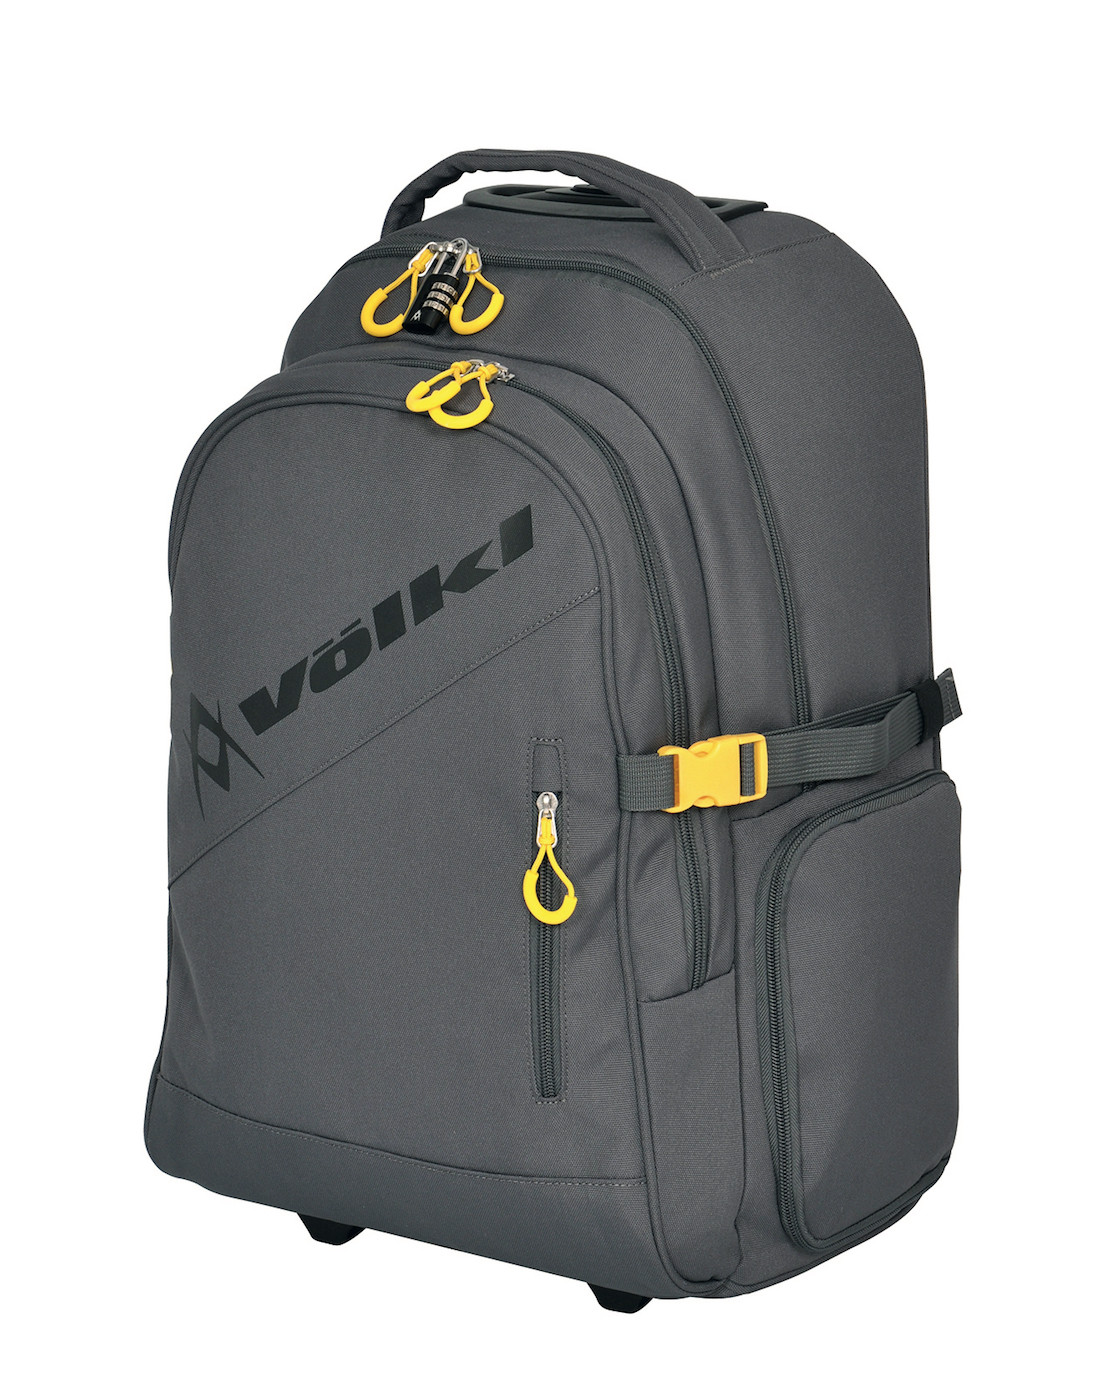 Völkl Travel Laptop Wheel Bag